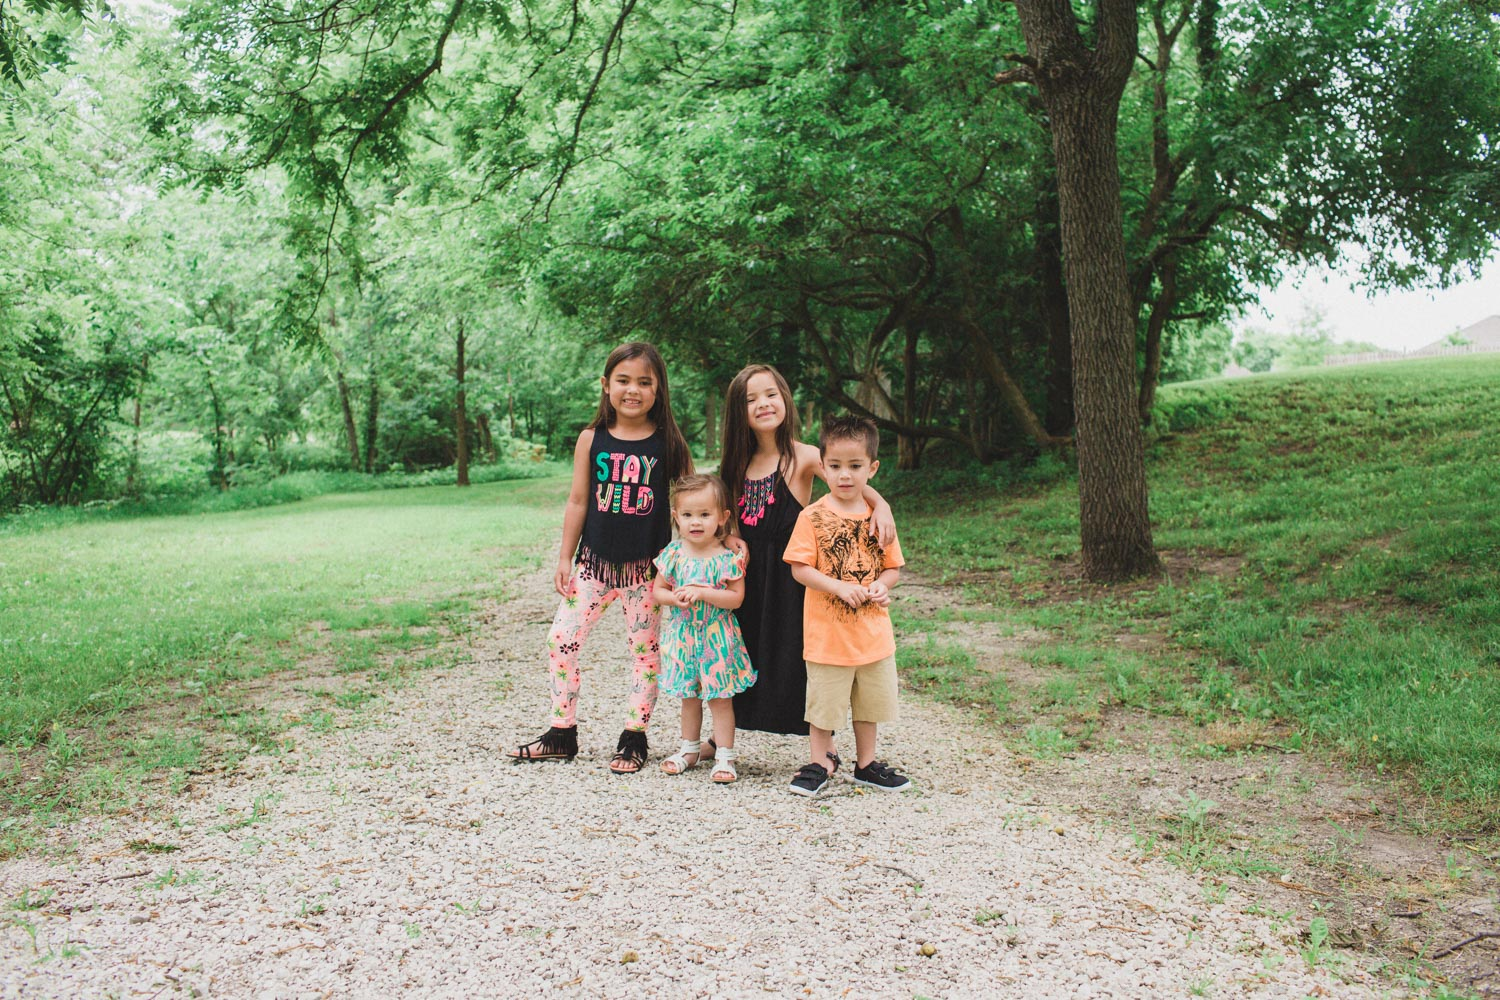 JustFab Kids Reveal #3 - Jungle Theme Safari Outfits for Kids